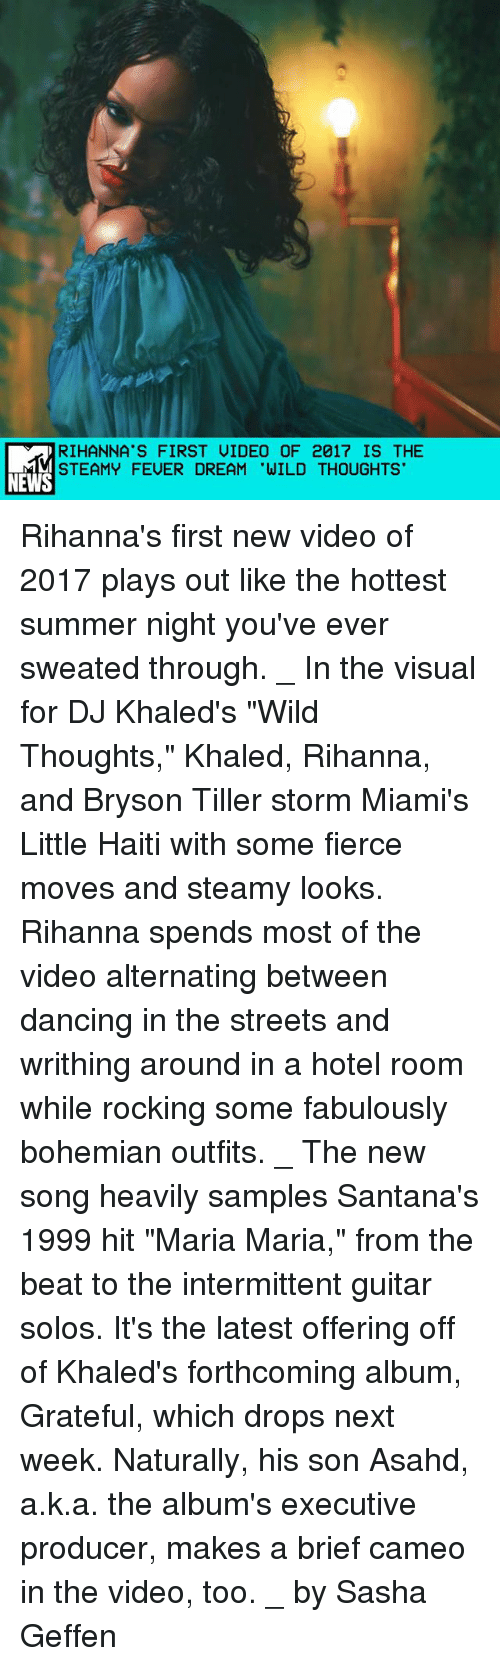 """Bryson: RIHANNA'S FIRST UIDEO OF 2017 IS THE  STEAMY FEUER DREAM 'WILD THOUGHTS  NEWS Rihanna's first new video of 2017 plays out like the hottest summer night you've ever sweated through. _ In the visual for DJ Khaled's """"Wild Thoughts,"""" Khaled, Rihanna, and Bryson Tiller storm Miami's Little Haiti with some fierce moves and steamy looks. Rihanna spends most of the video alternating between dancing in the streets and writhing around in a hotel room while rocking some fabulously bohemian outfits. _ The new song heavily samples Santana's 1999 hit """"Maria Maria,"""" from the beat to the intermittent guitar solos. It's the latest offering off of Khaled's forthcoming album, Grateful, which drops next week. Naturally, his son Asahd, a.k.a. the album's executive producer, makes a brief cameo in the video, too. _ by Sasha Geffen"""